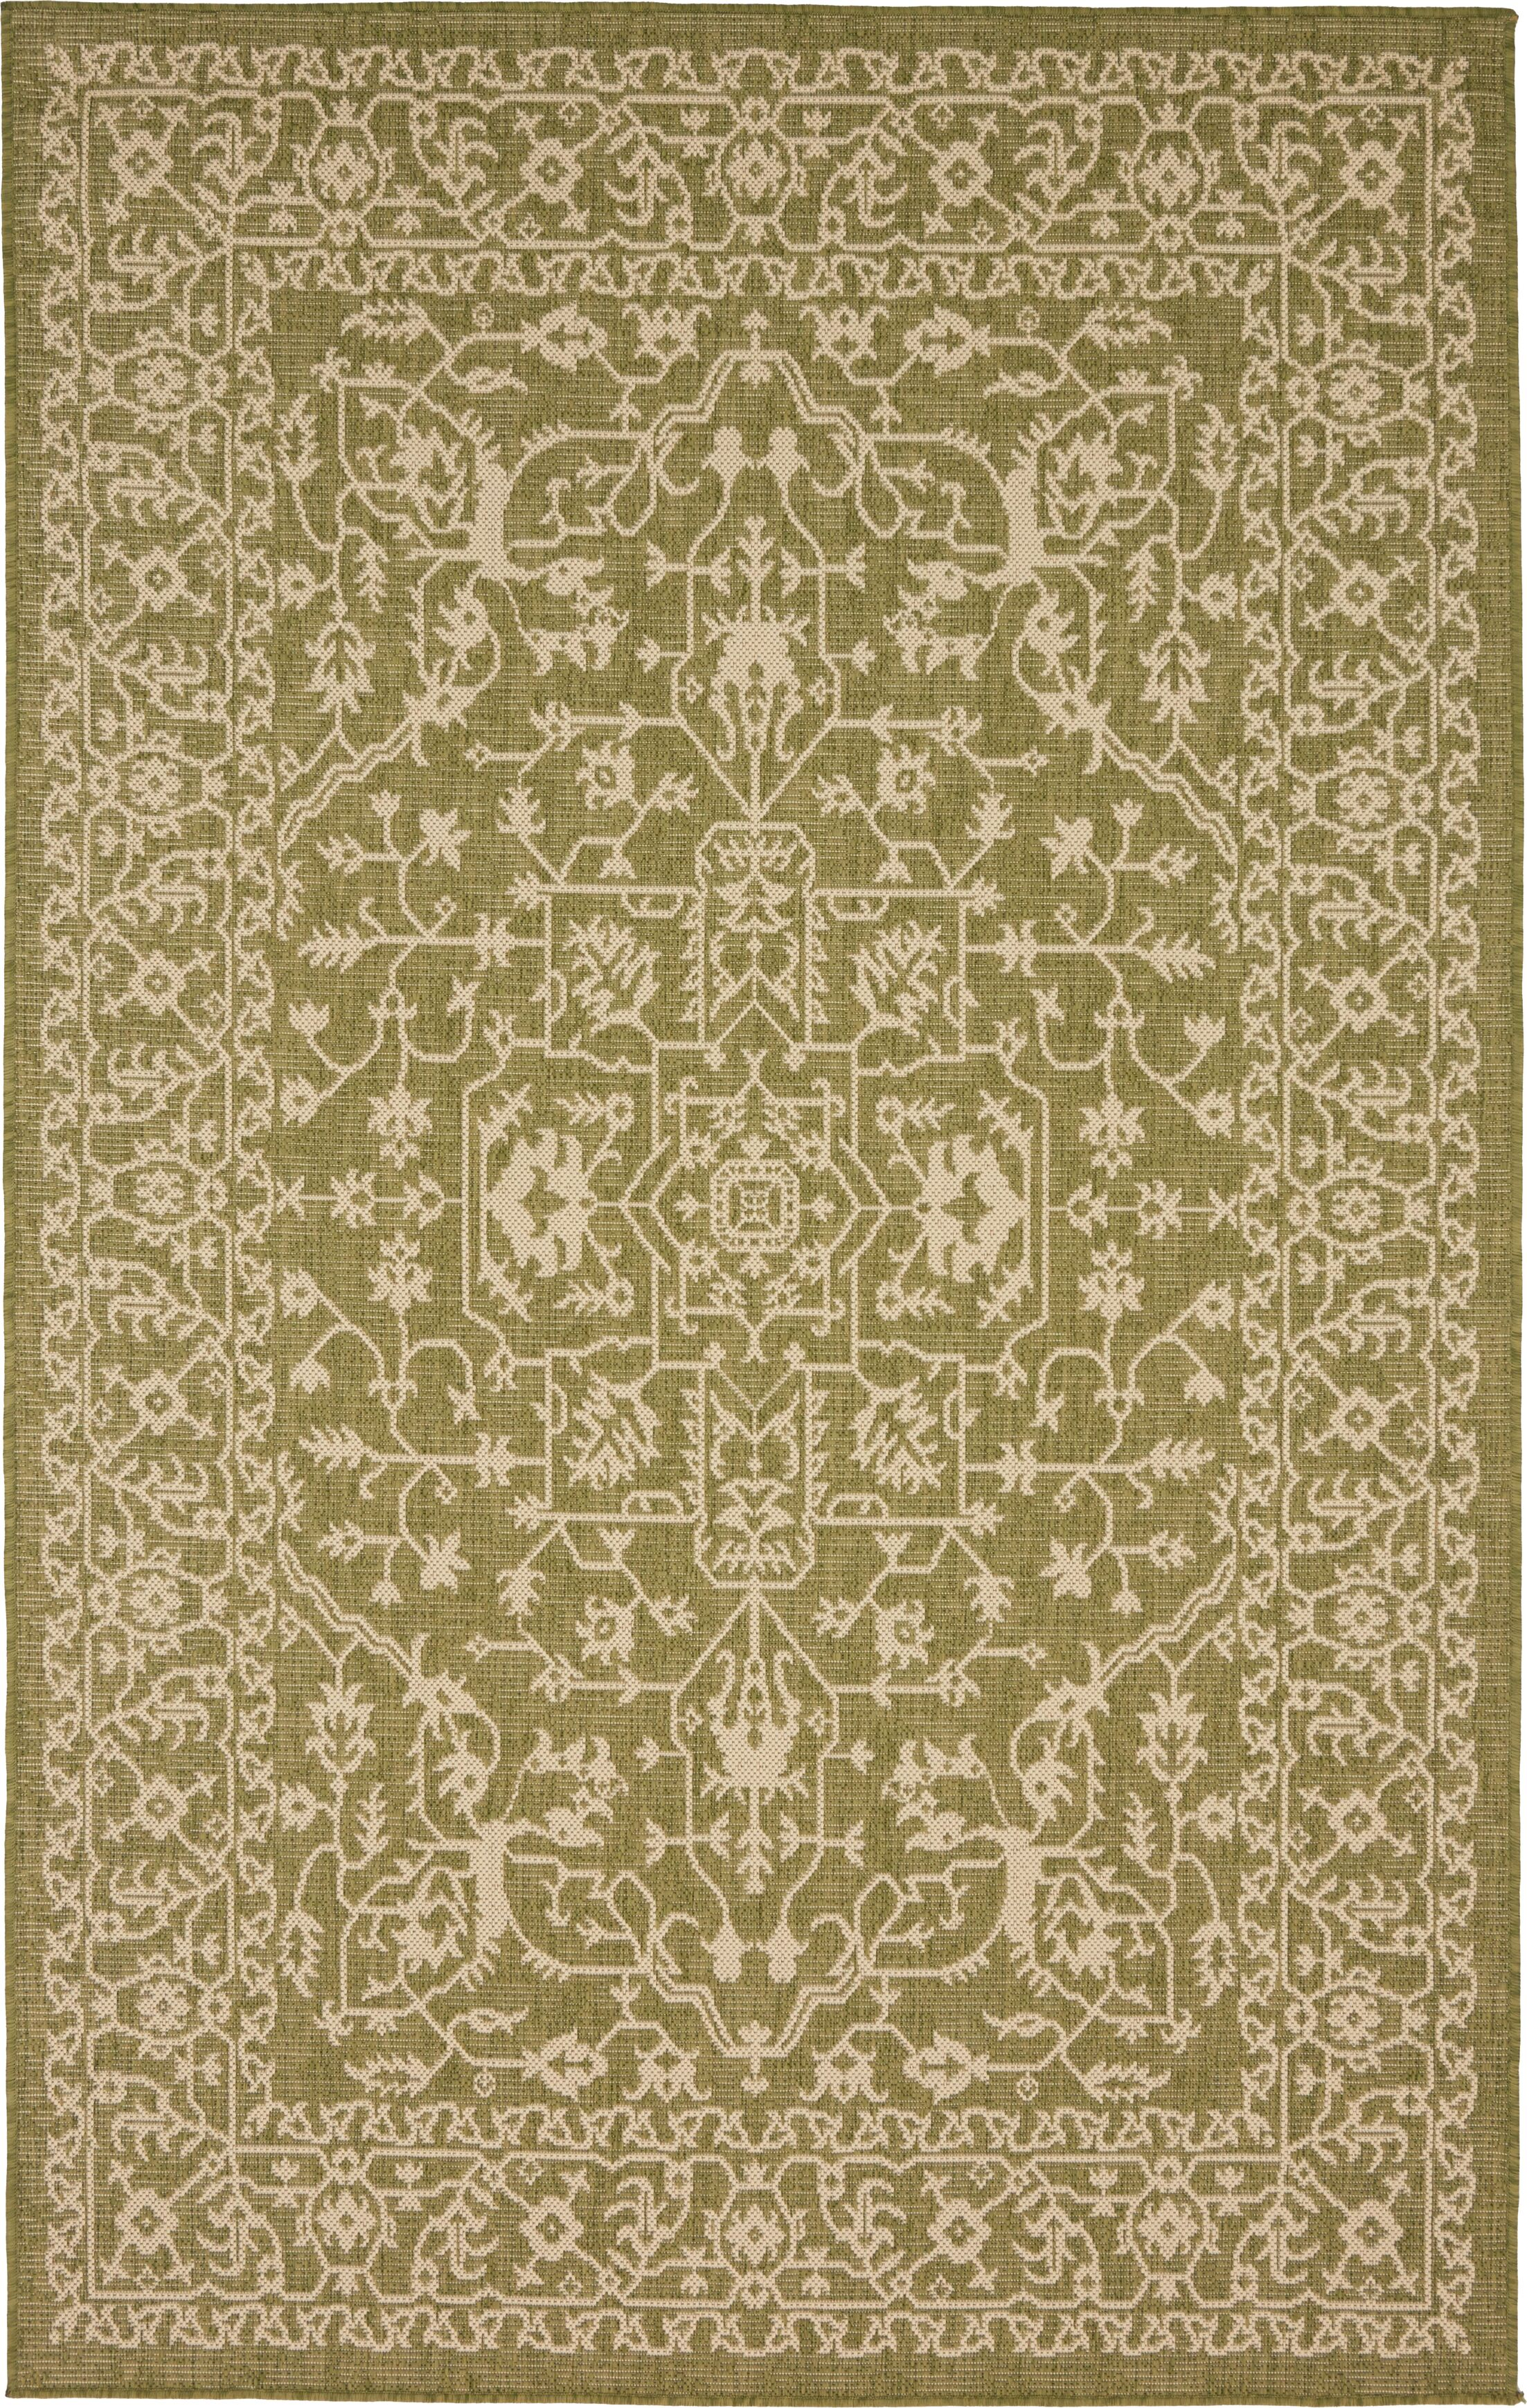 Applecrest Green Outdoor Area Rug Rug Size: Rectangle 5' x 8'